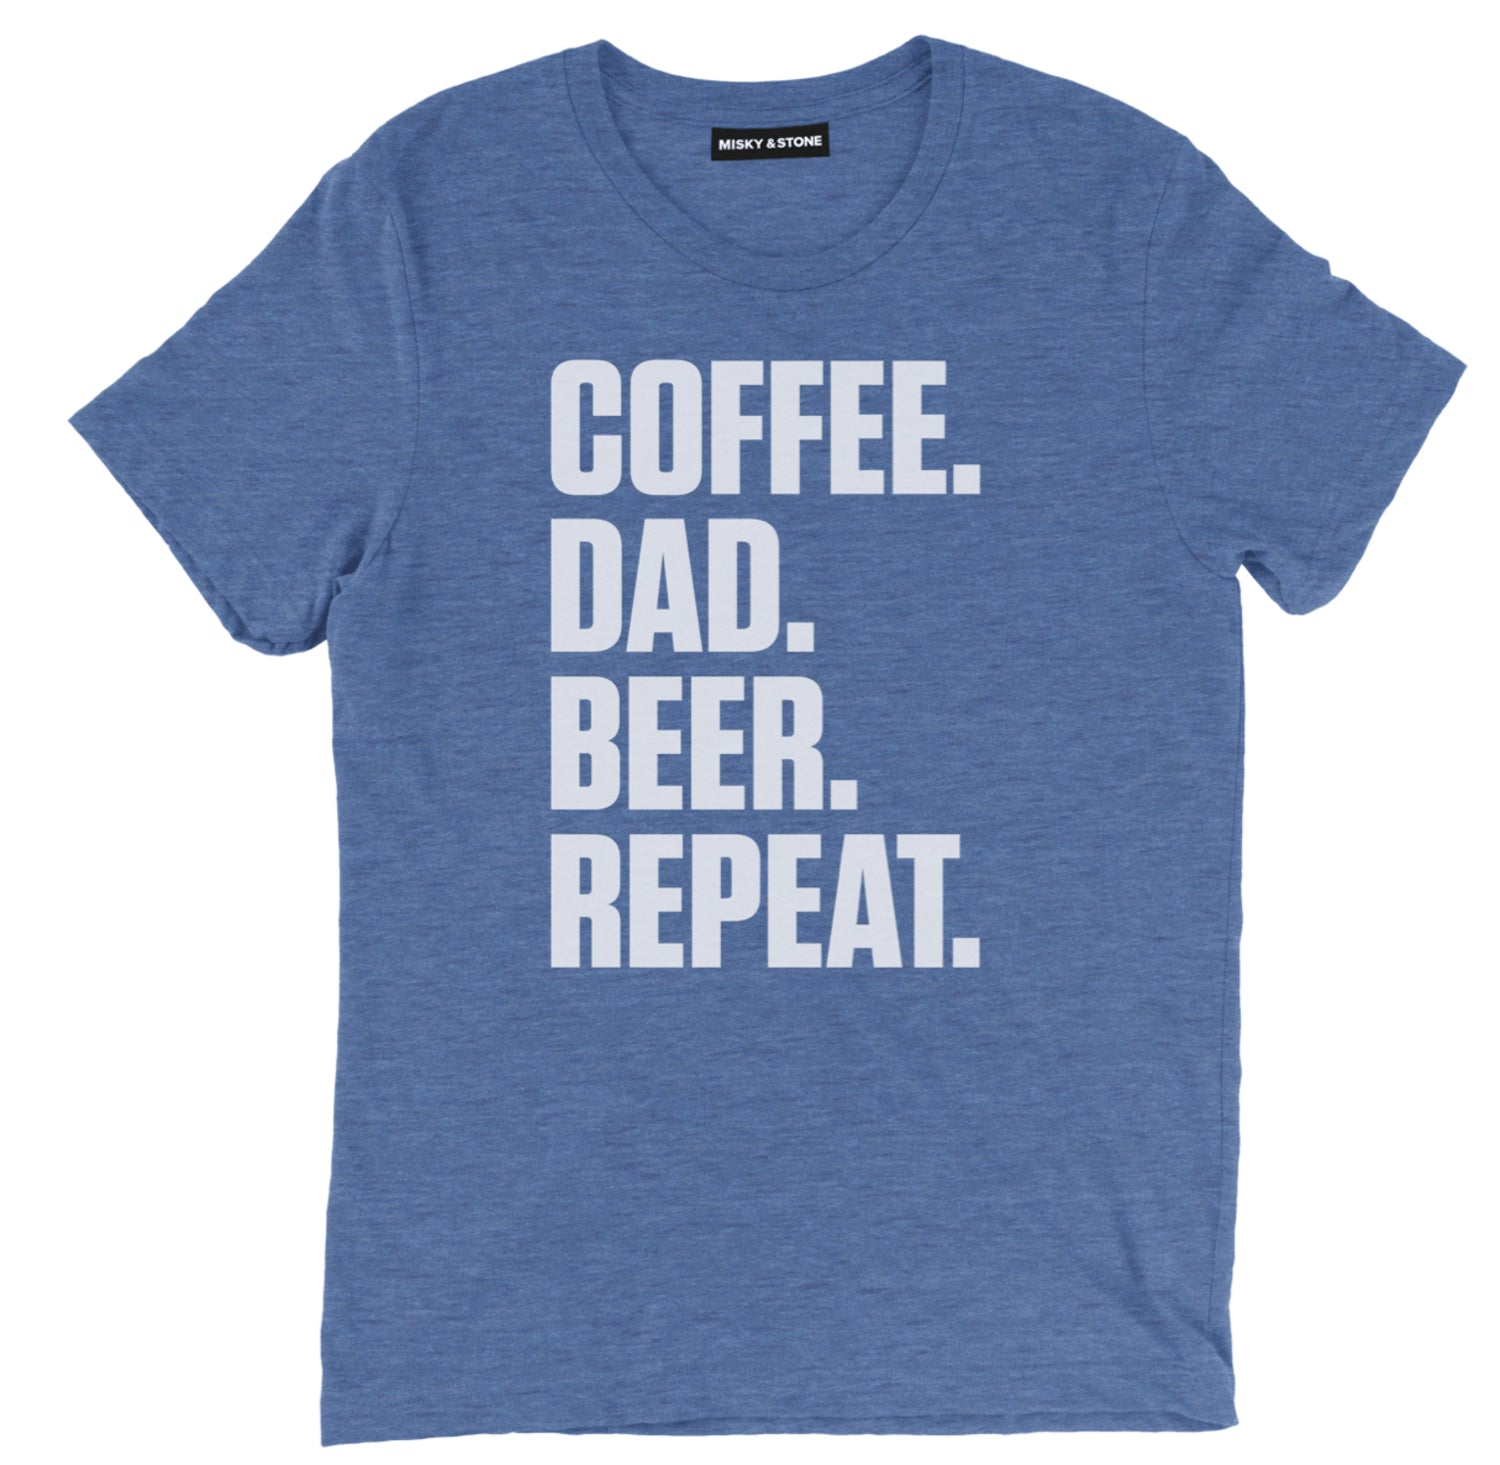 coffee dad beer repeat t shirt, beer t shirt, dad t shirt, funny dad t shirt, coffee t shirt, coffee shirts, coffee tee shirts, funny coffee shirts, cute coffee shirts